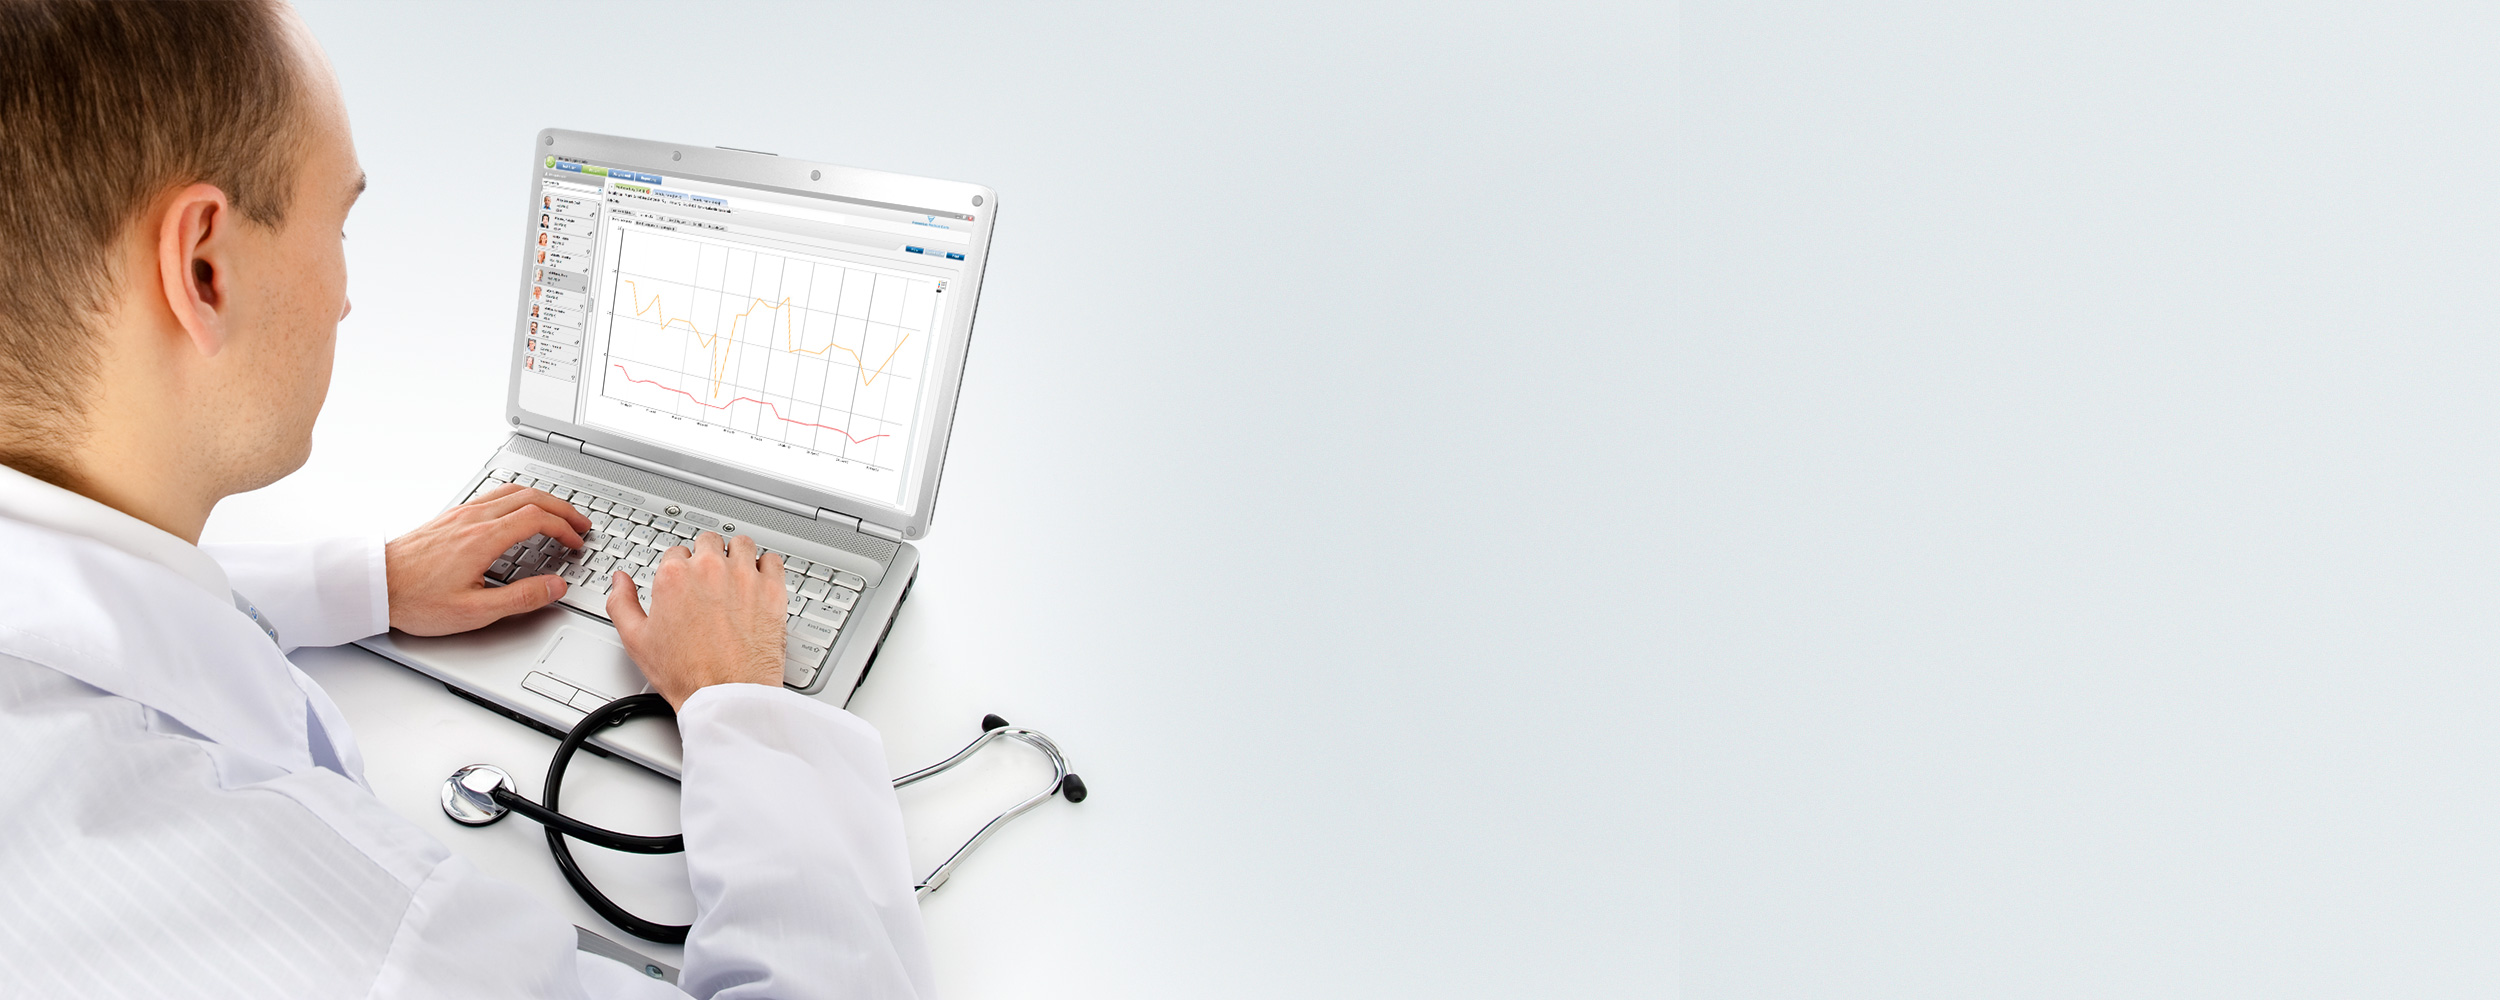 Médico utilizando Therapy Support Suite (TSS) de Fresenius Medical Care